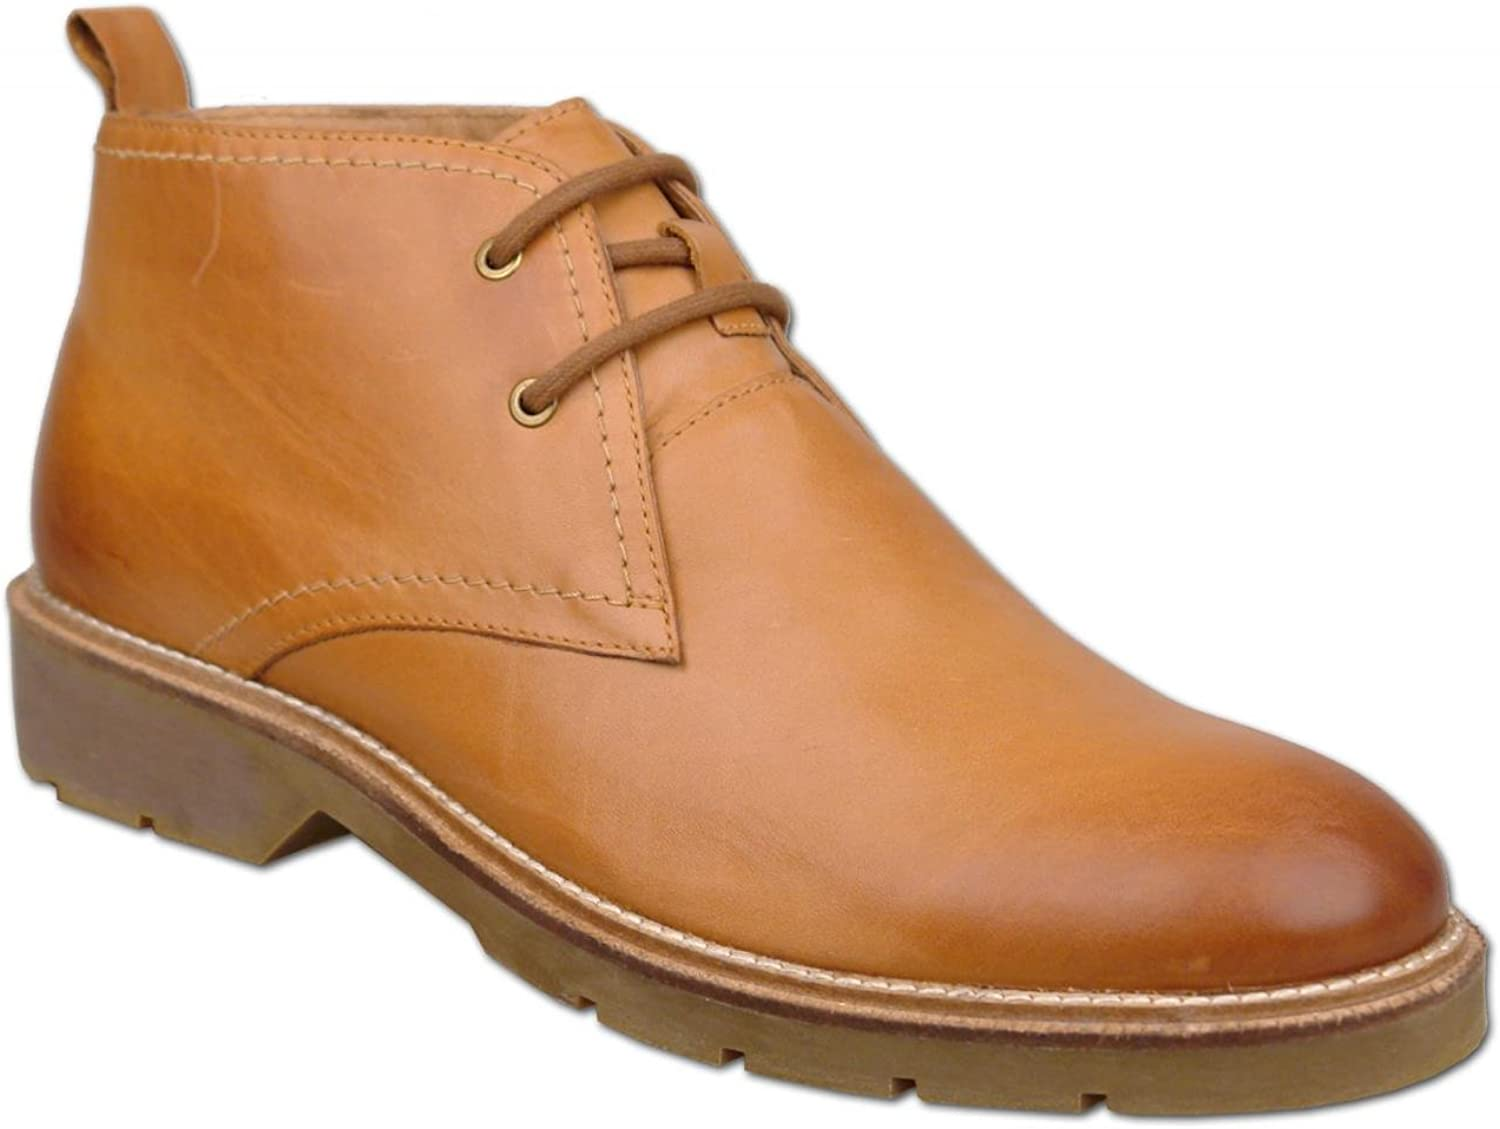 Mens Light Tan Leather Chukka Ankle Boots